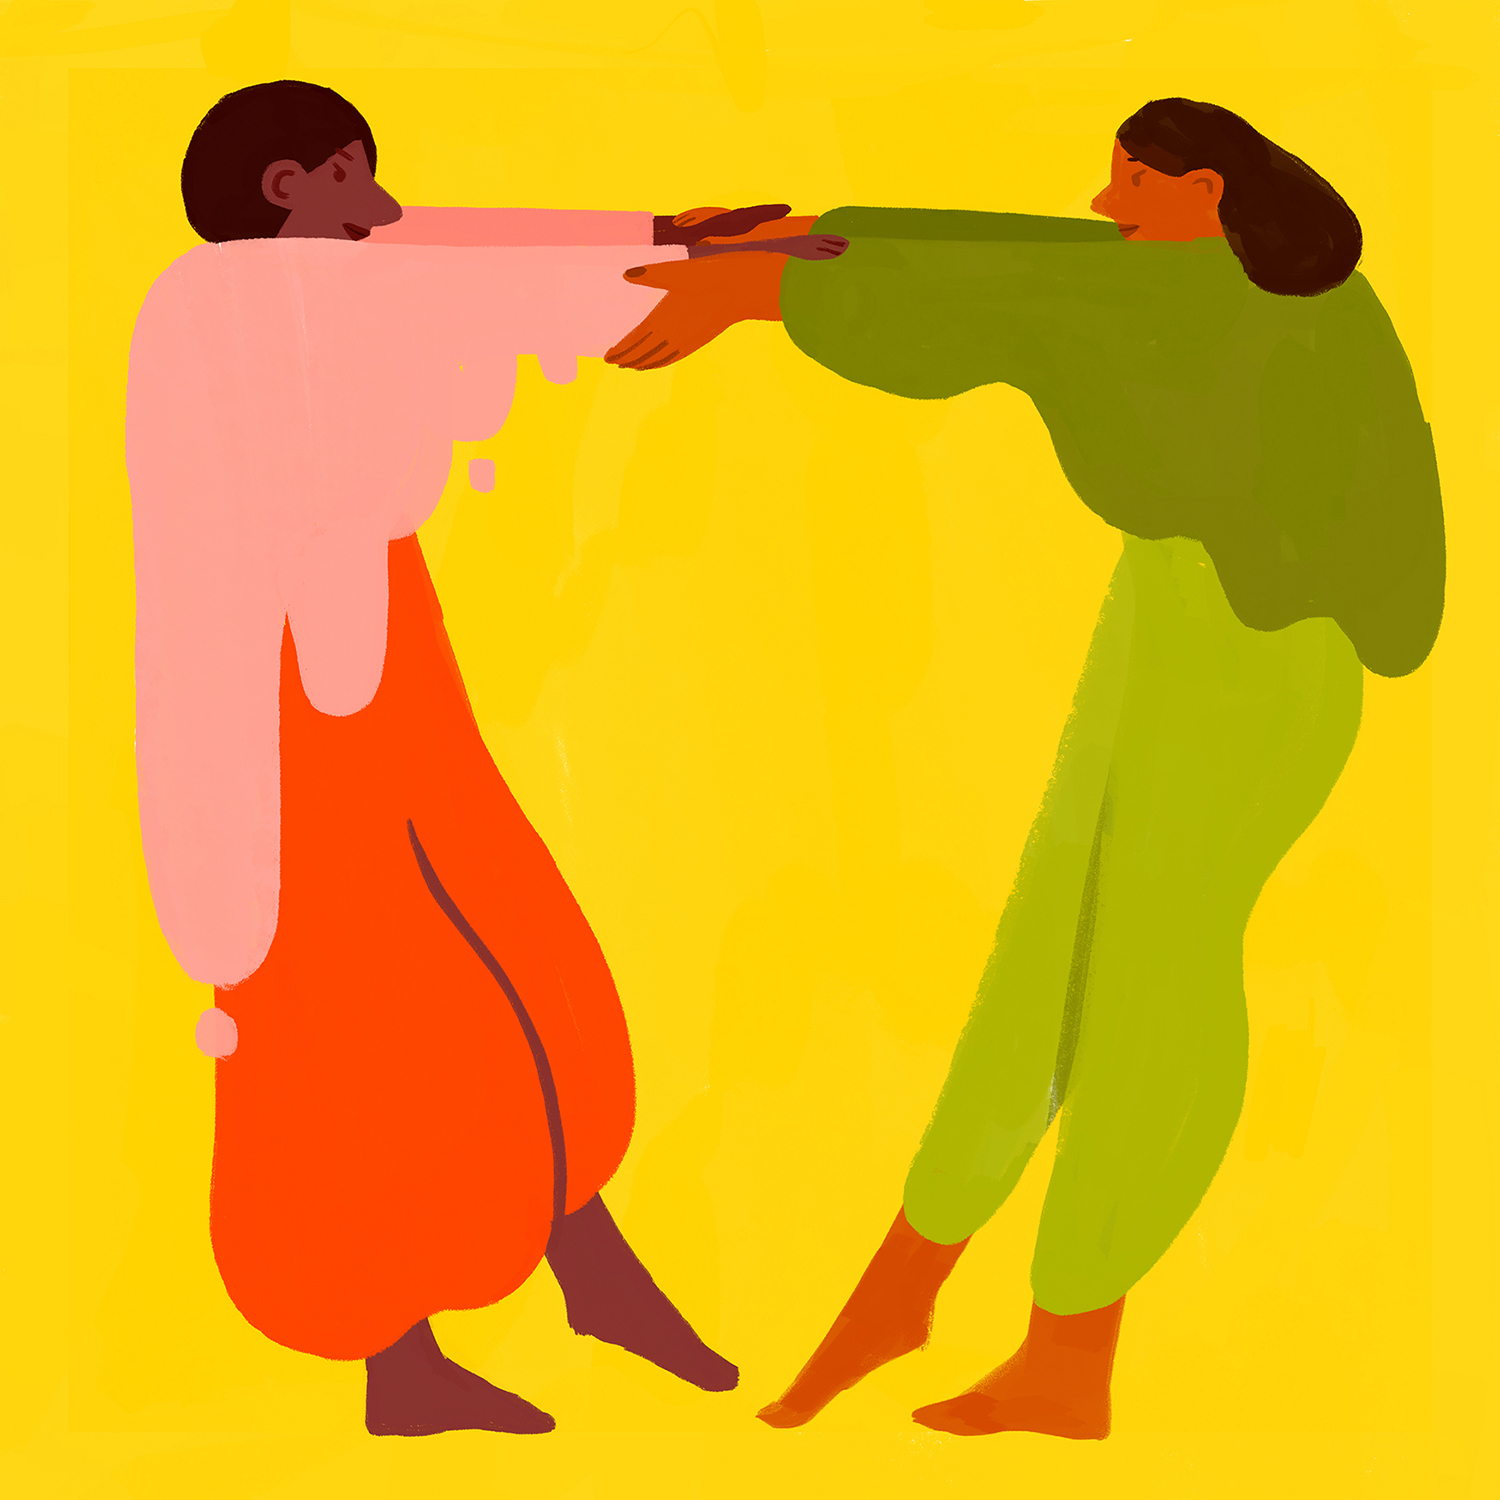 holding-each-other-tight-people-couple-friendship-colorful-yellow-illustration-violeta-noy